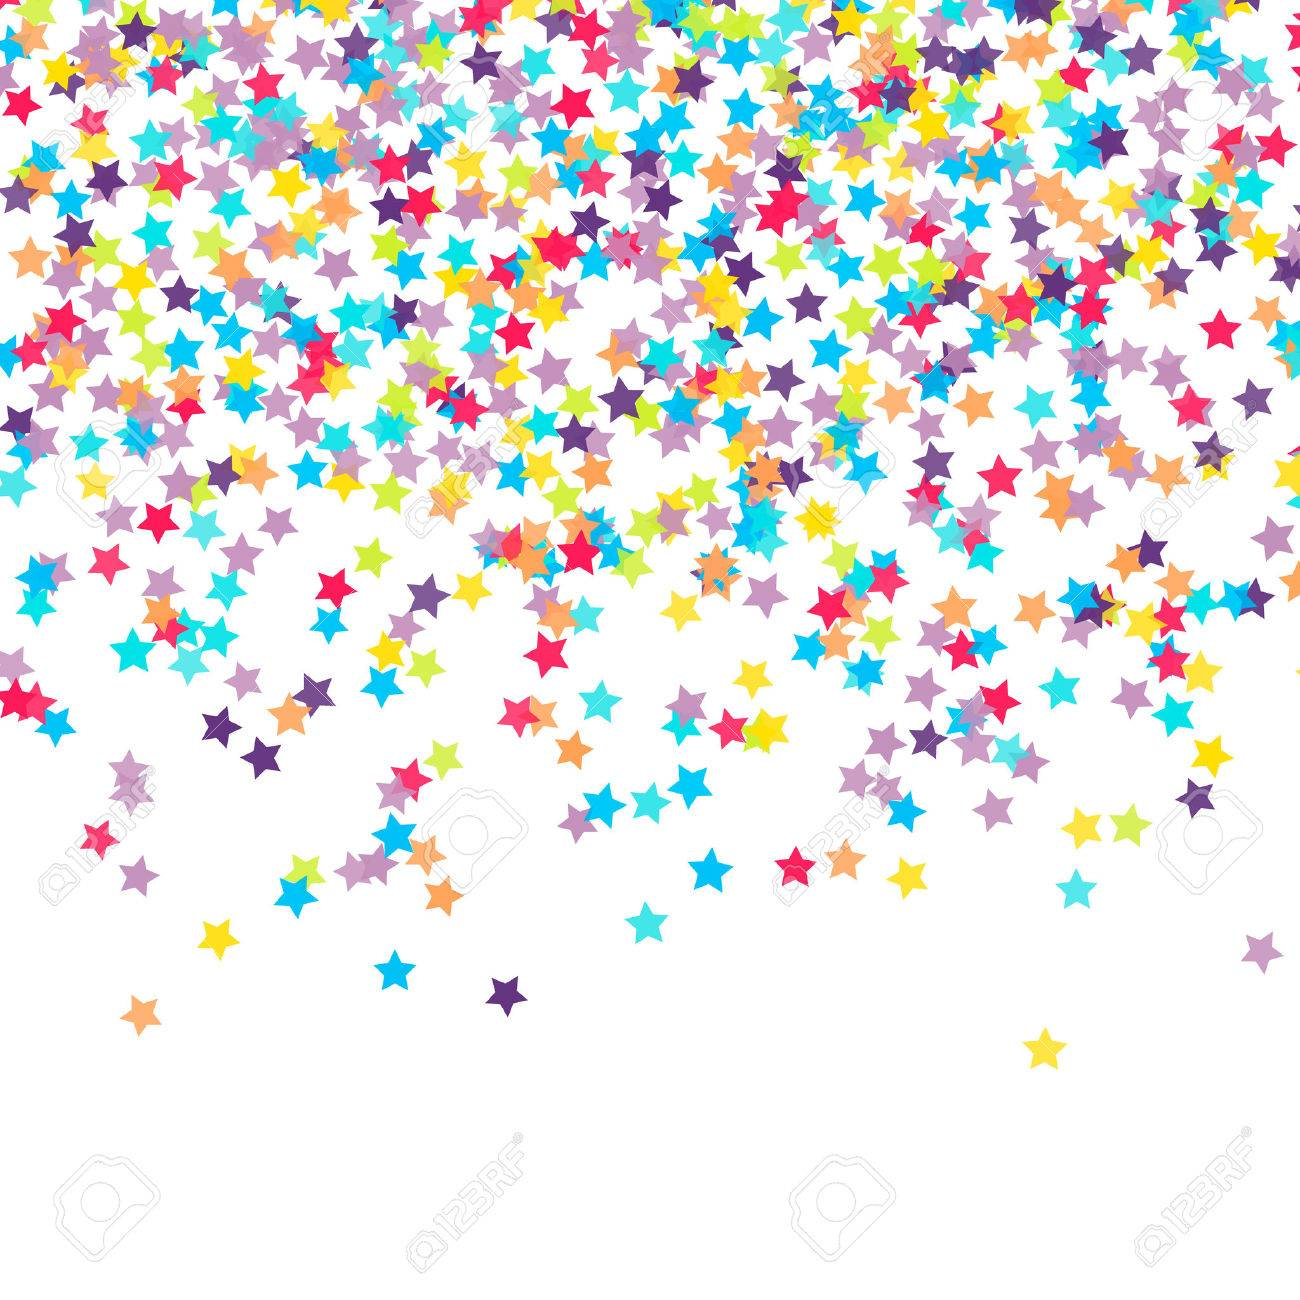 Abstract background with falling star-shaped confetti Stock Vector - 44544010